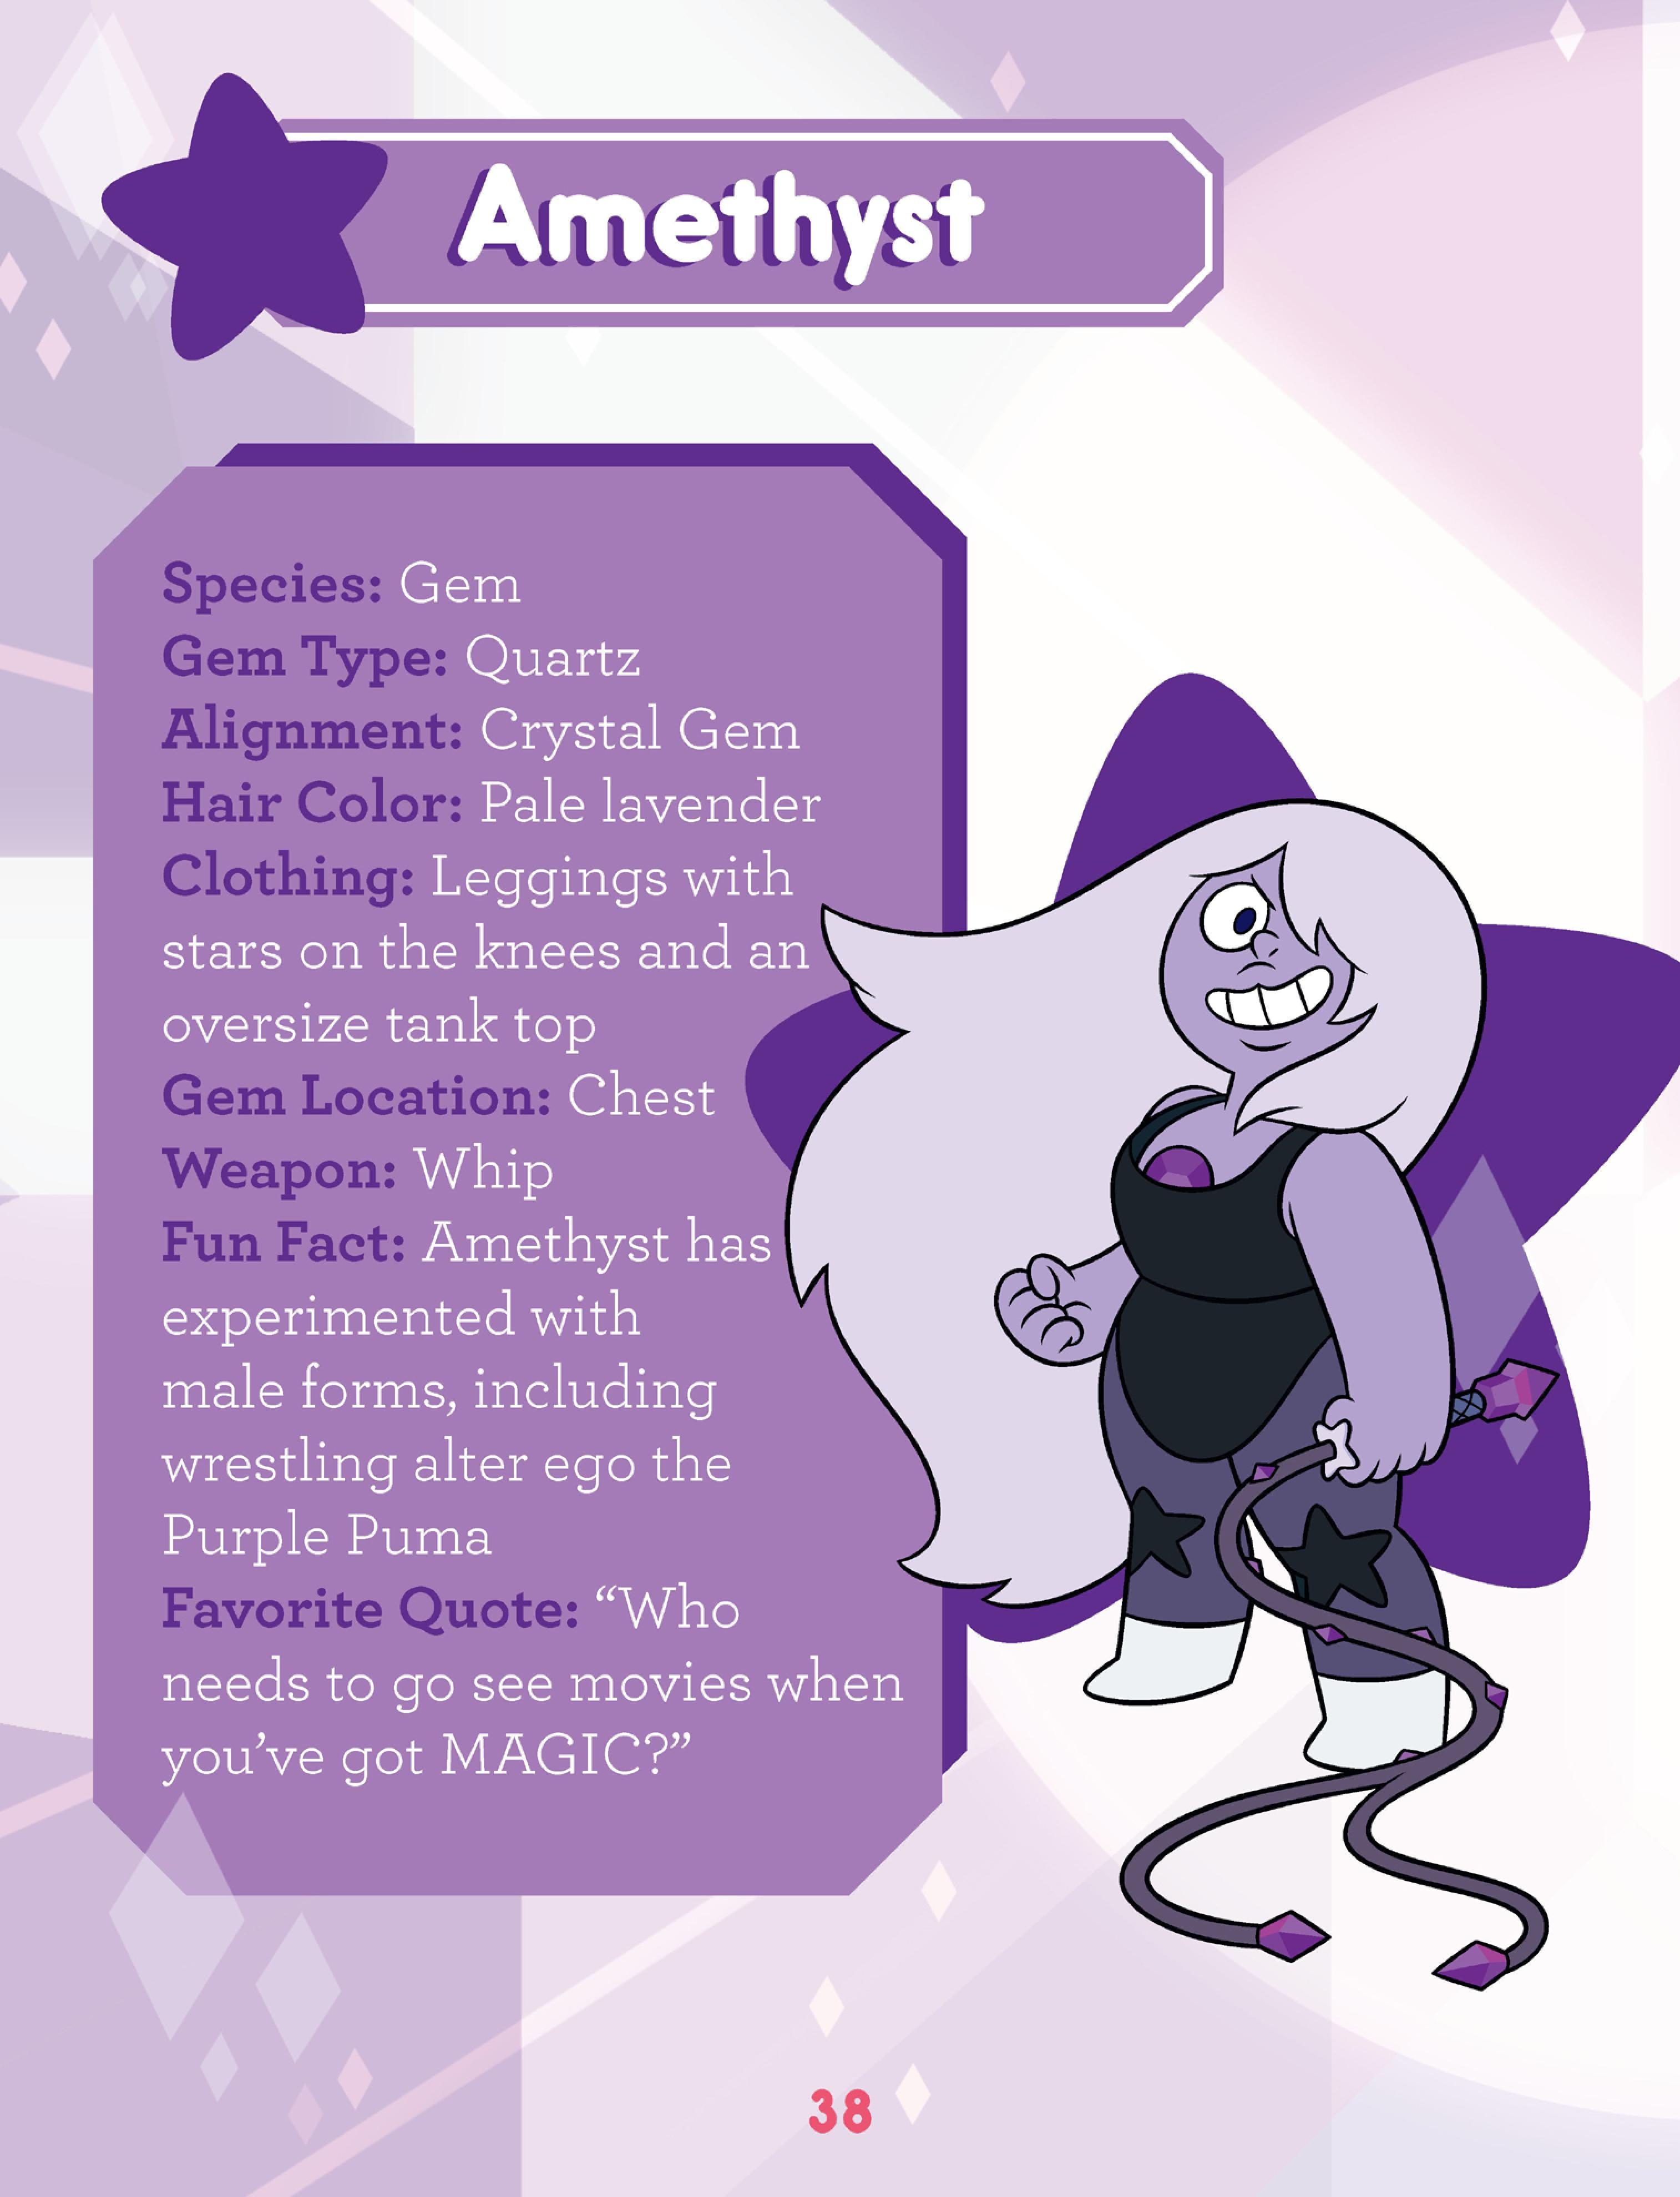 Amethyst S Entry In Guide To The Crystal Gems